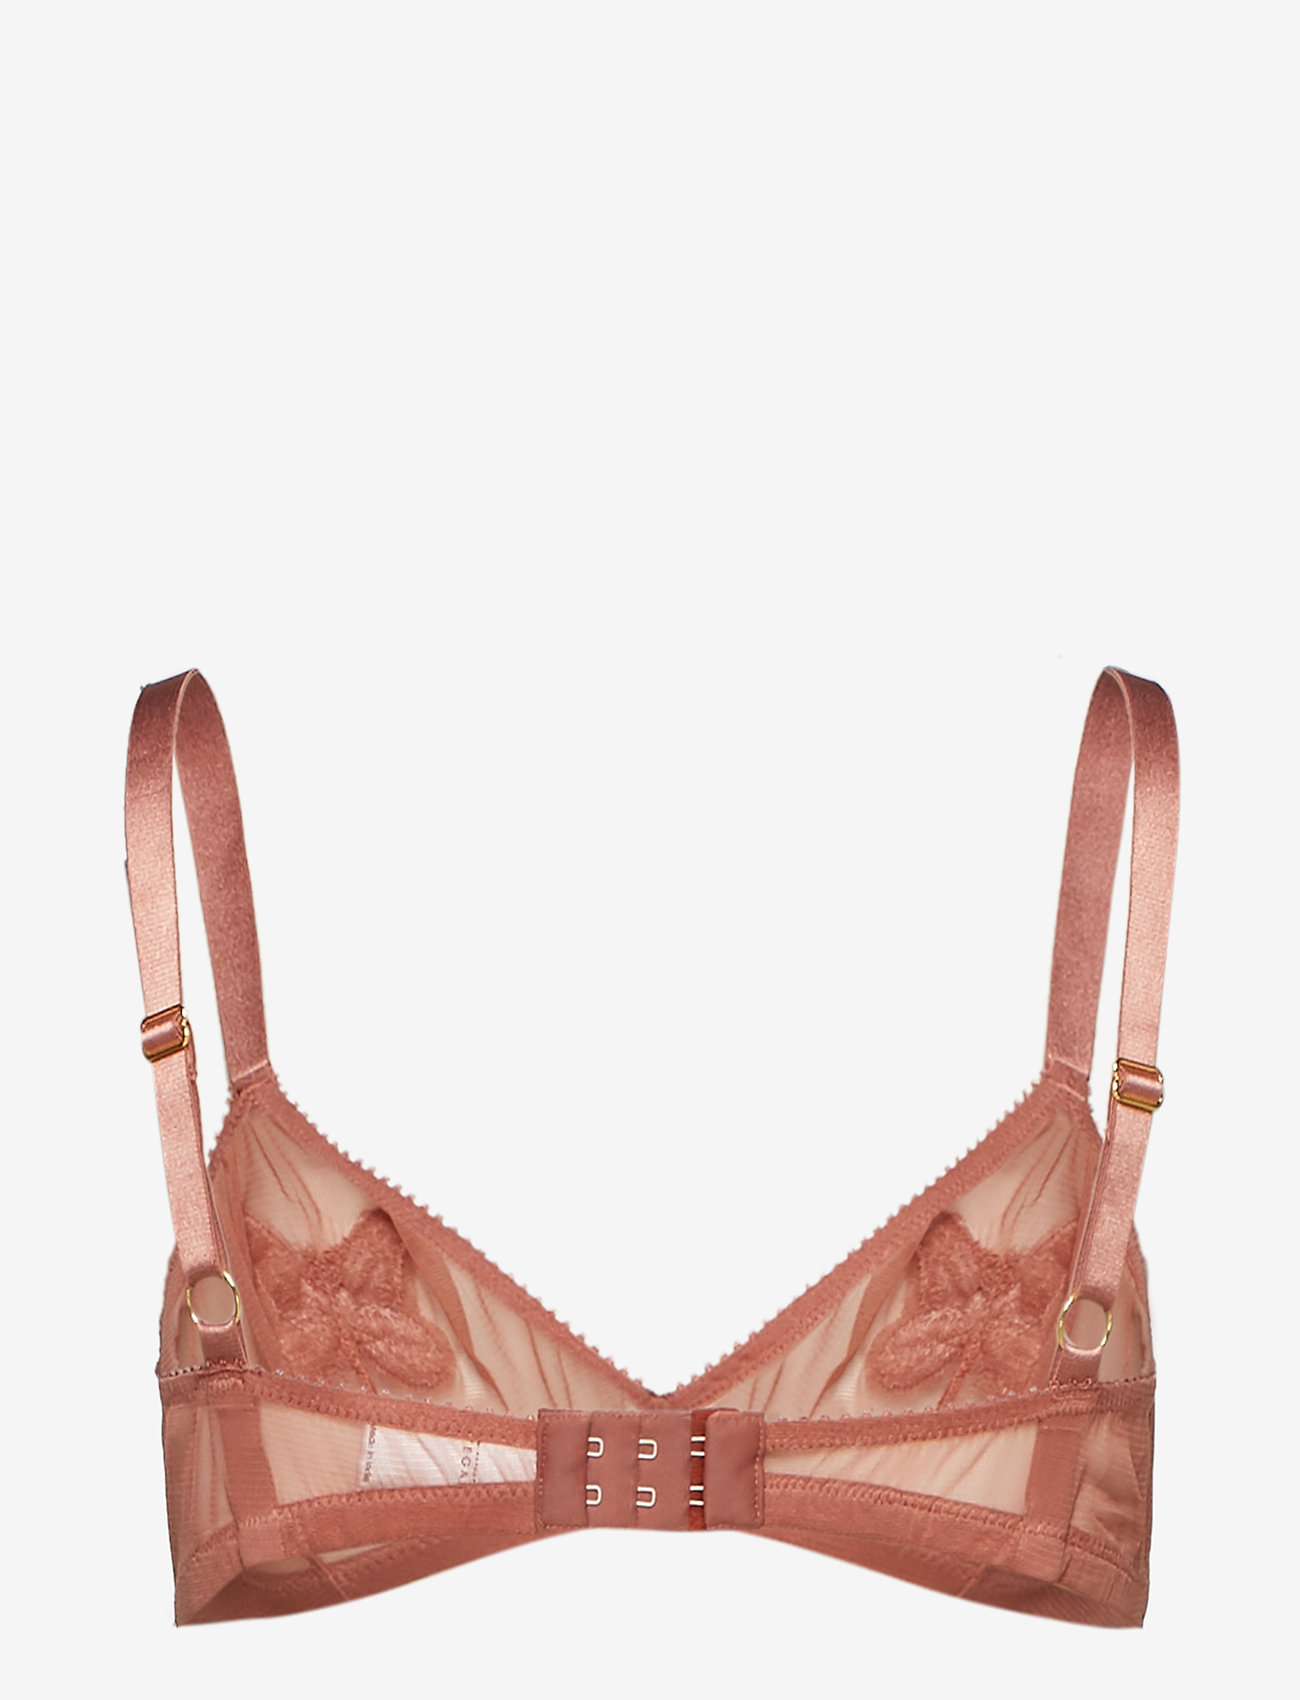 Underprotection - Betty bra - bra without wire - berry